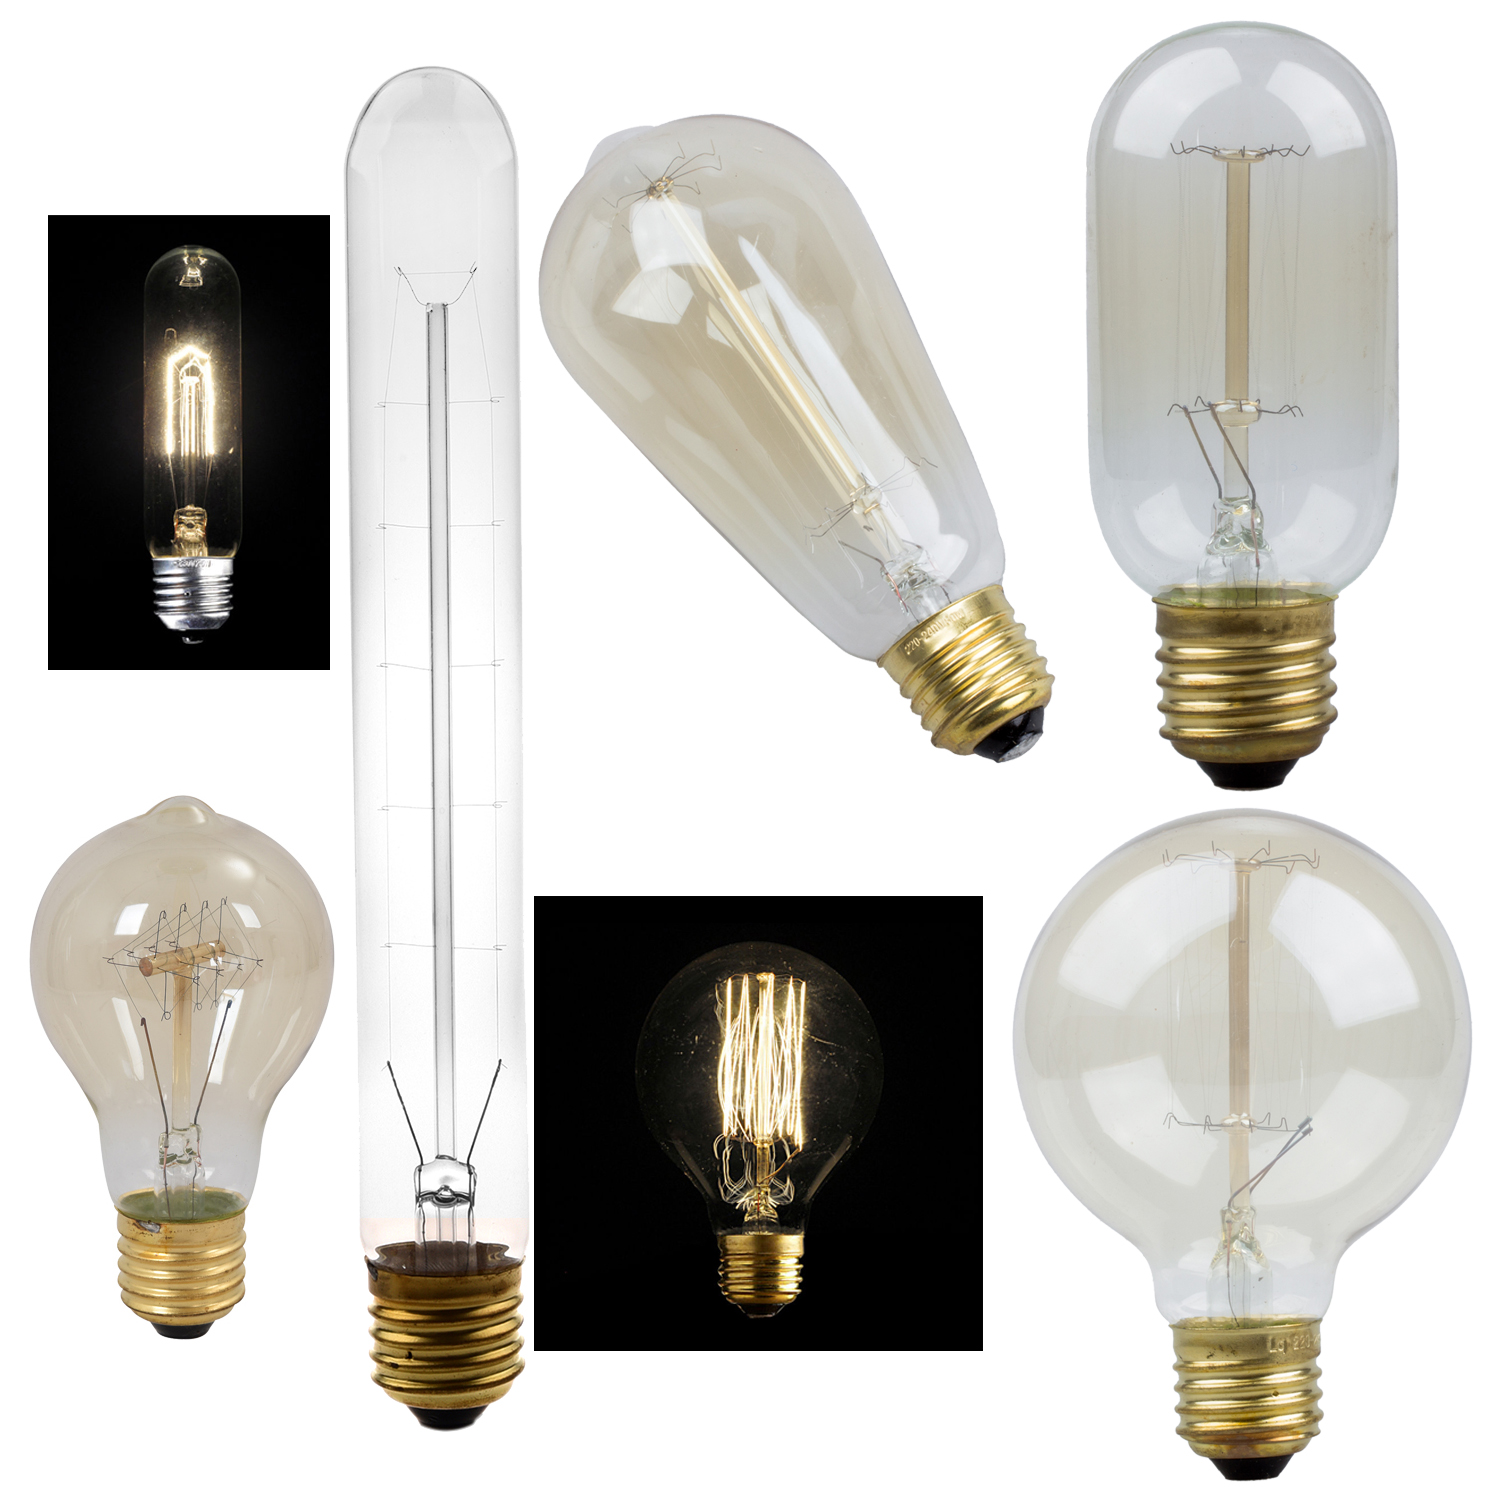 E27 40w vintage retro filament edison tungsten light bulb antique lamp led hp ebay Tungsten light bulbs